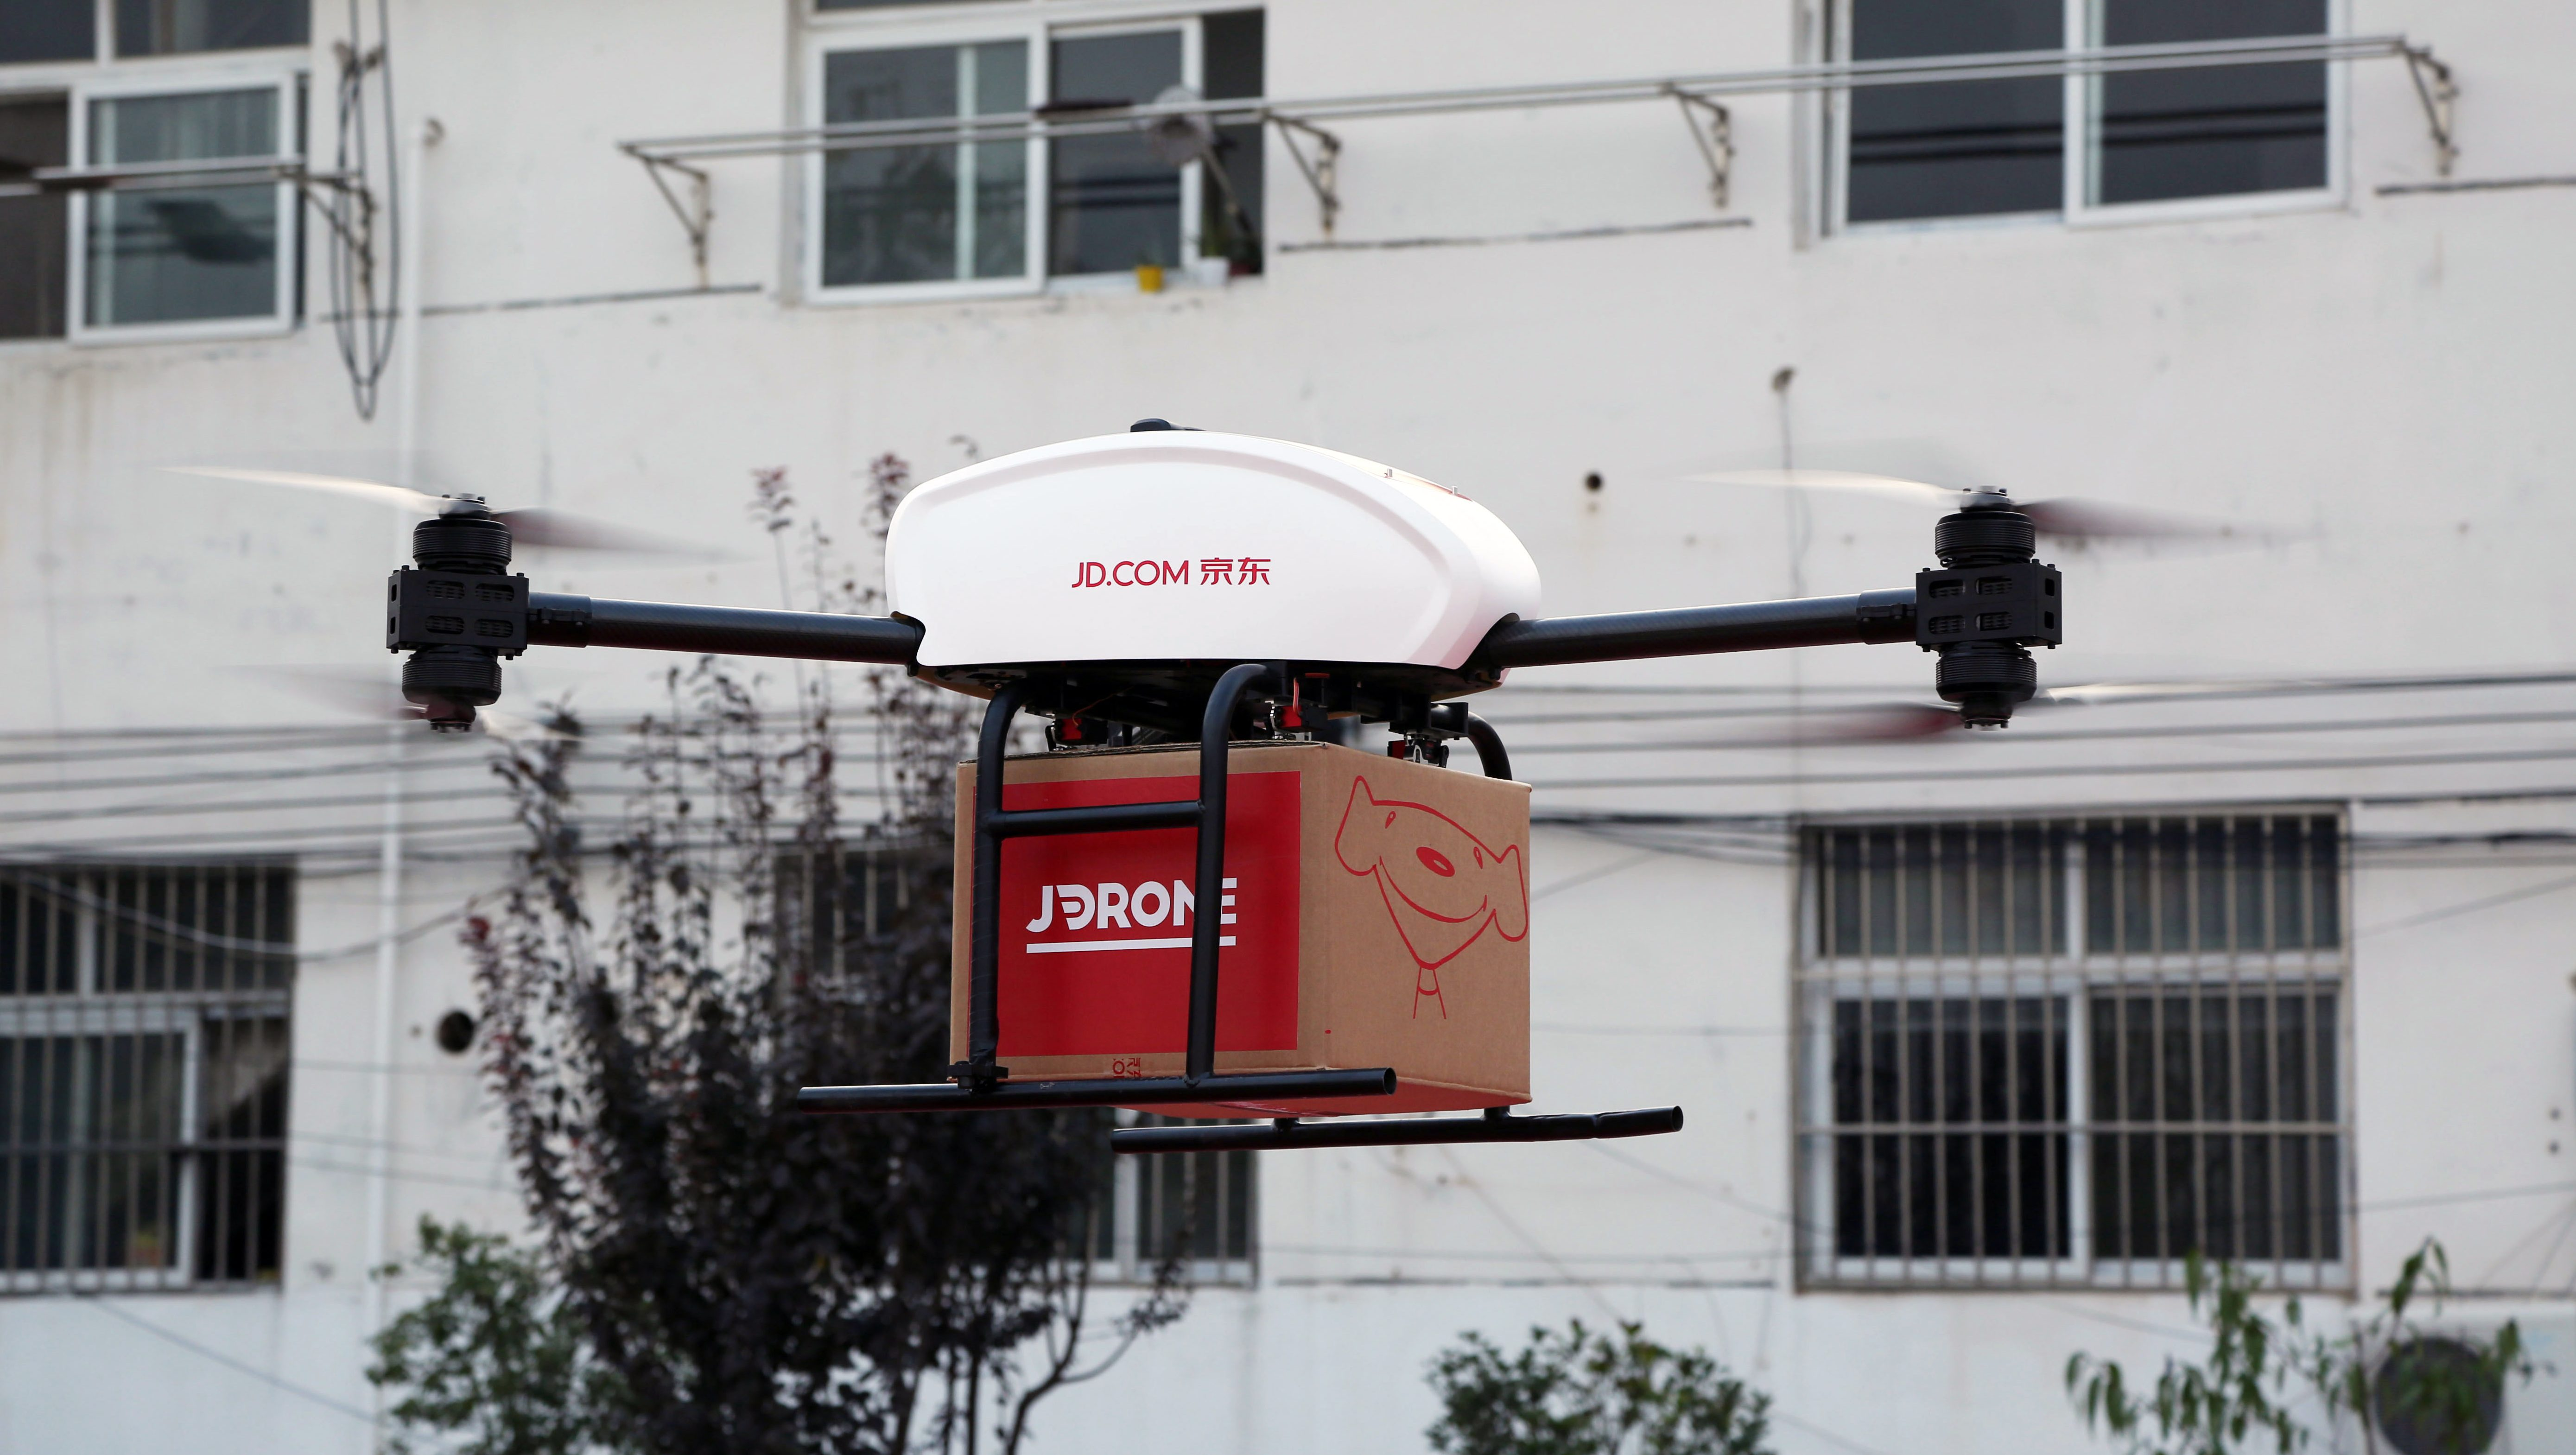 China's e-commerce giant JD.com is sending more drones for delivery soon.